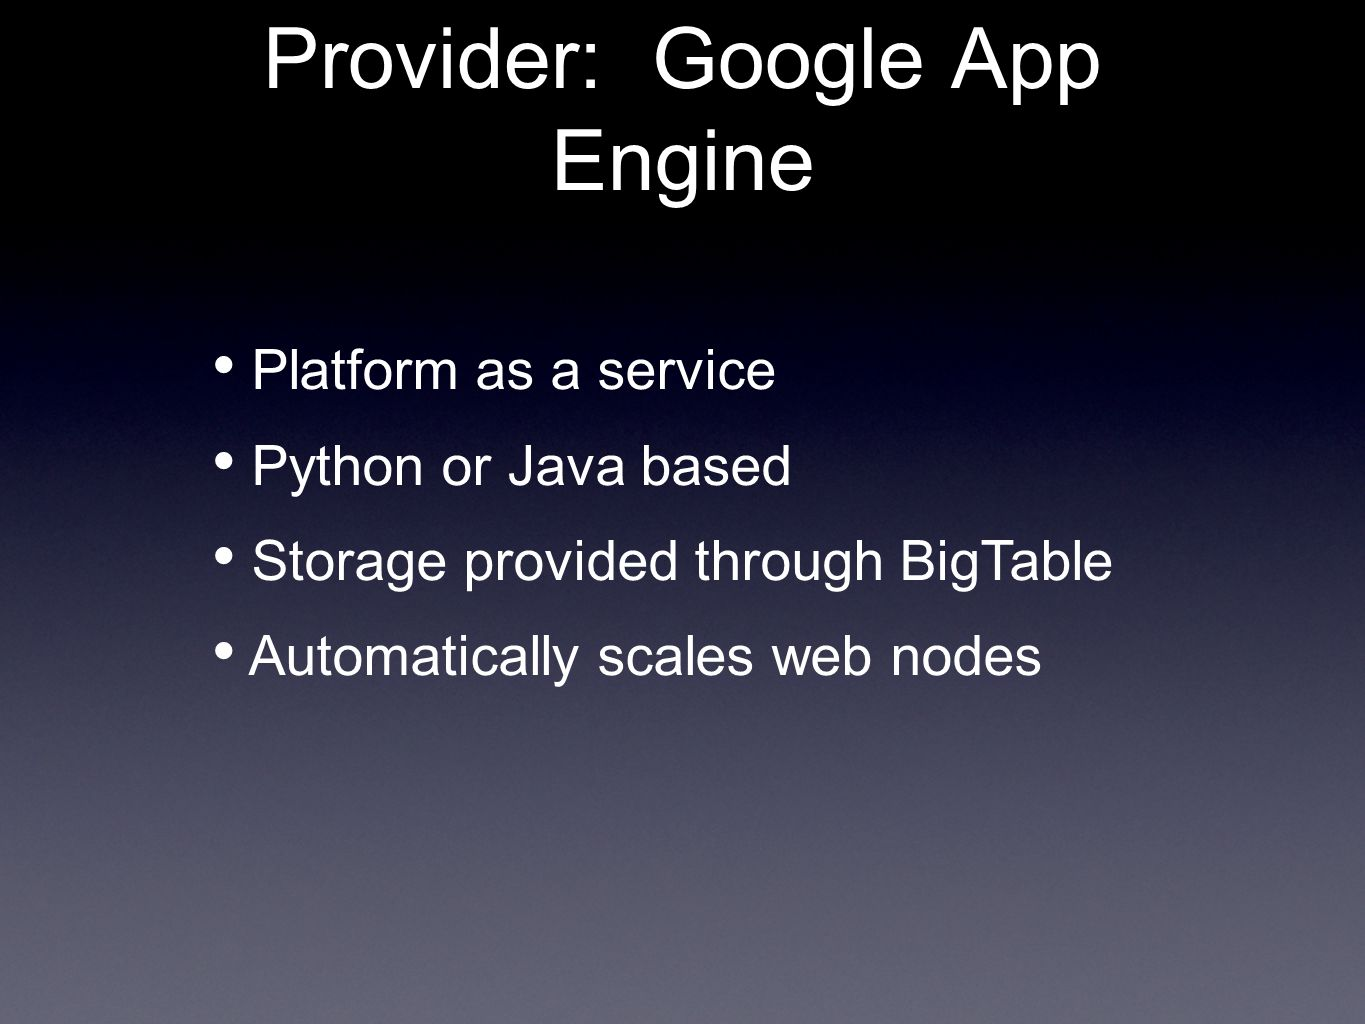 Provider: Google App Engine Platform as a service Python or Java based Storage provided through BigTable Automatically scales web nodes